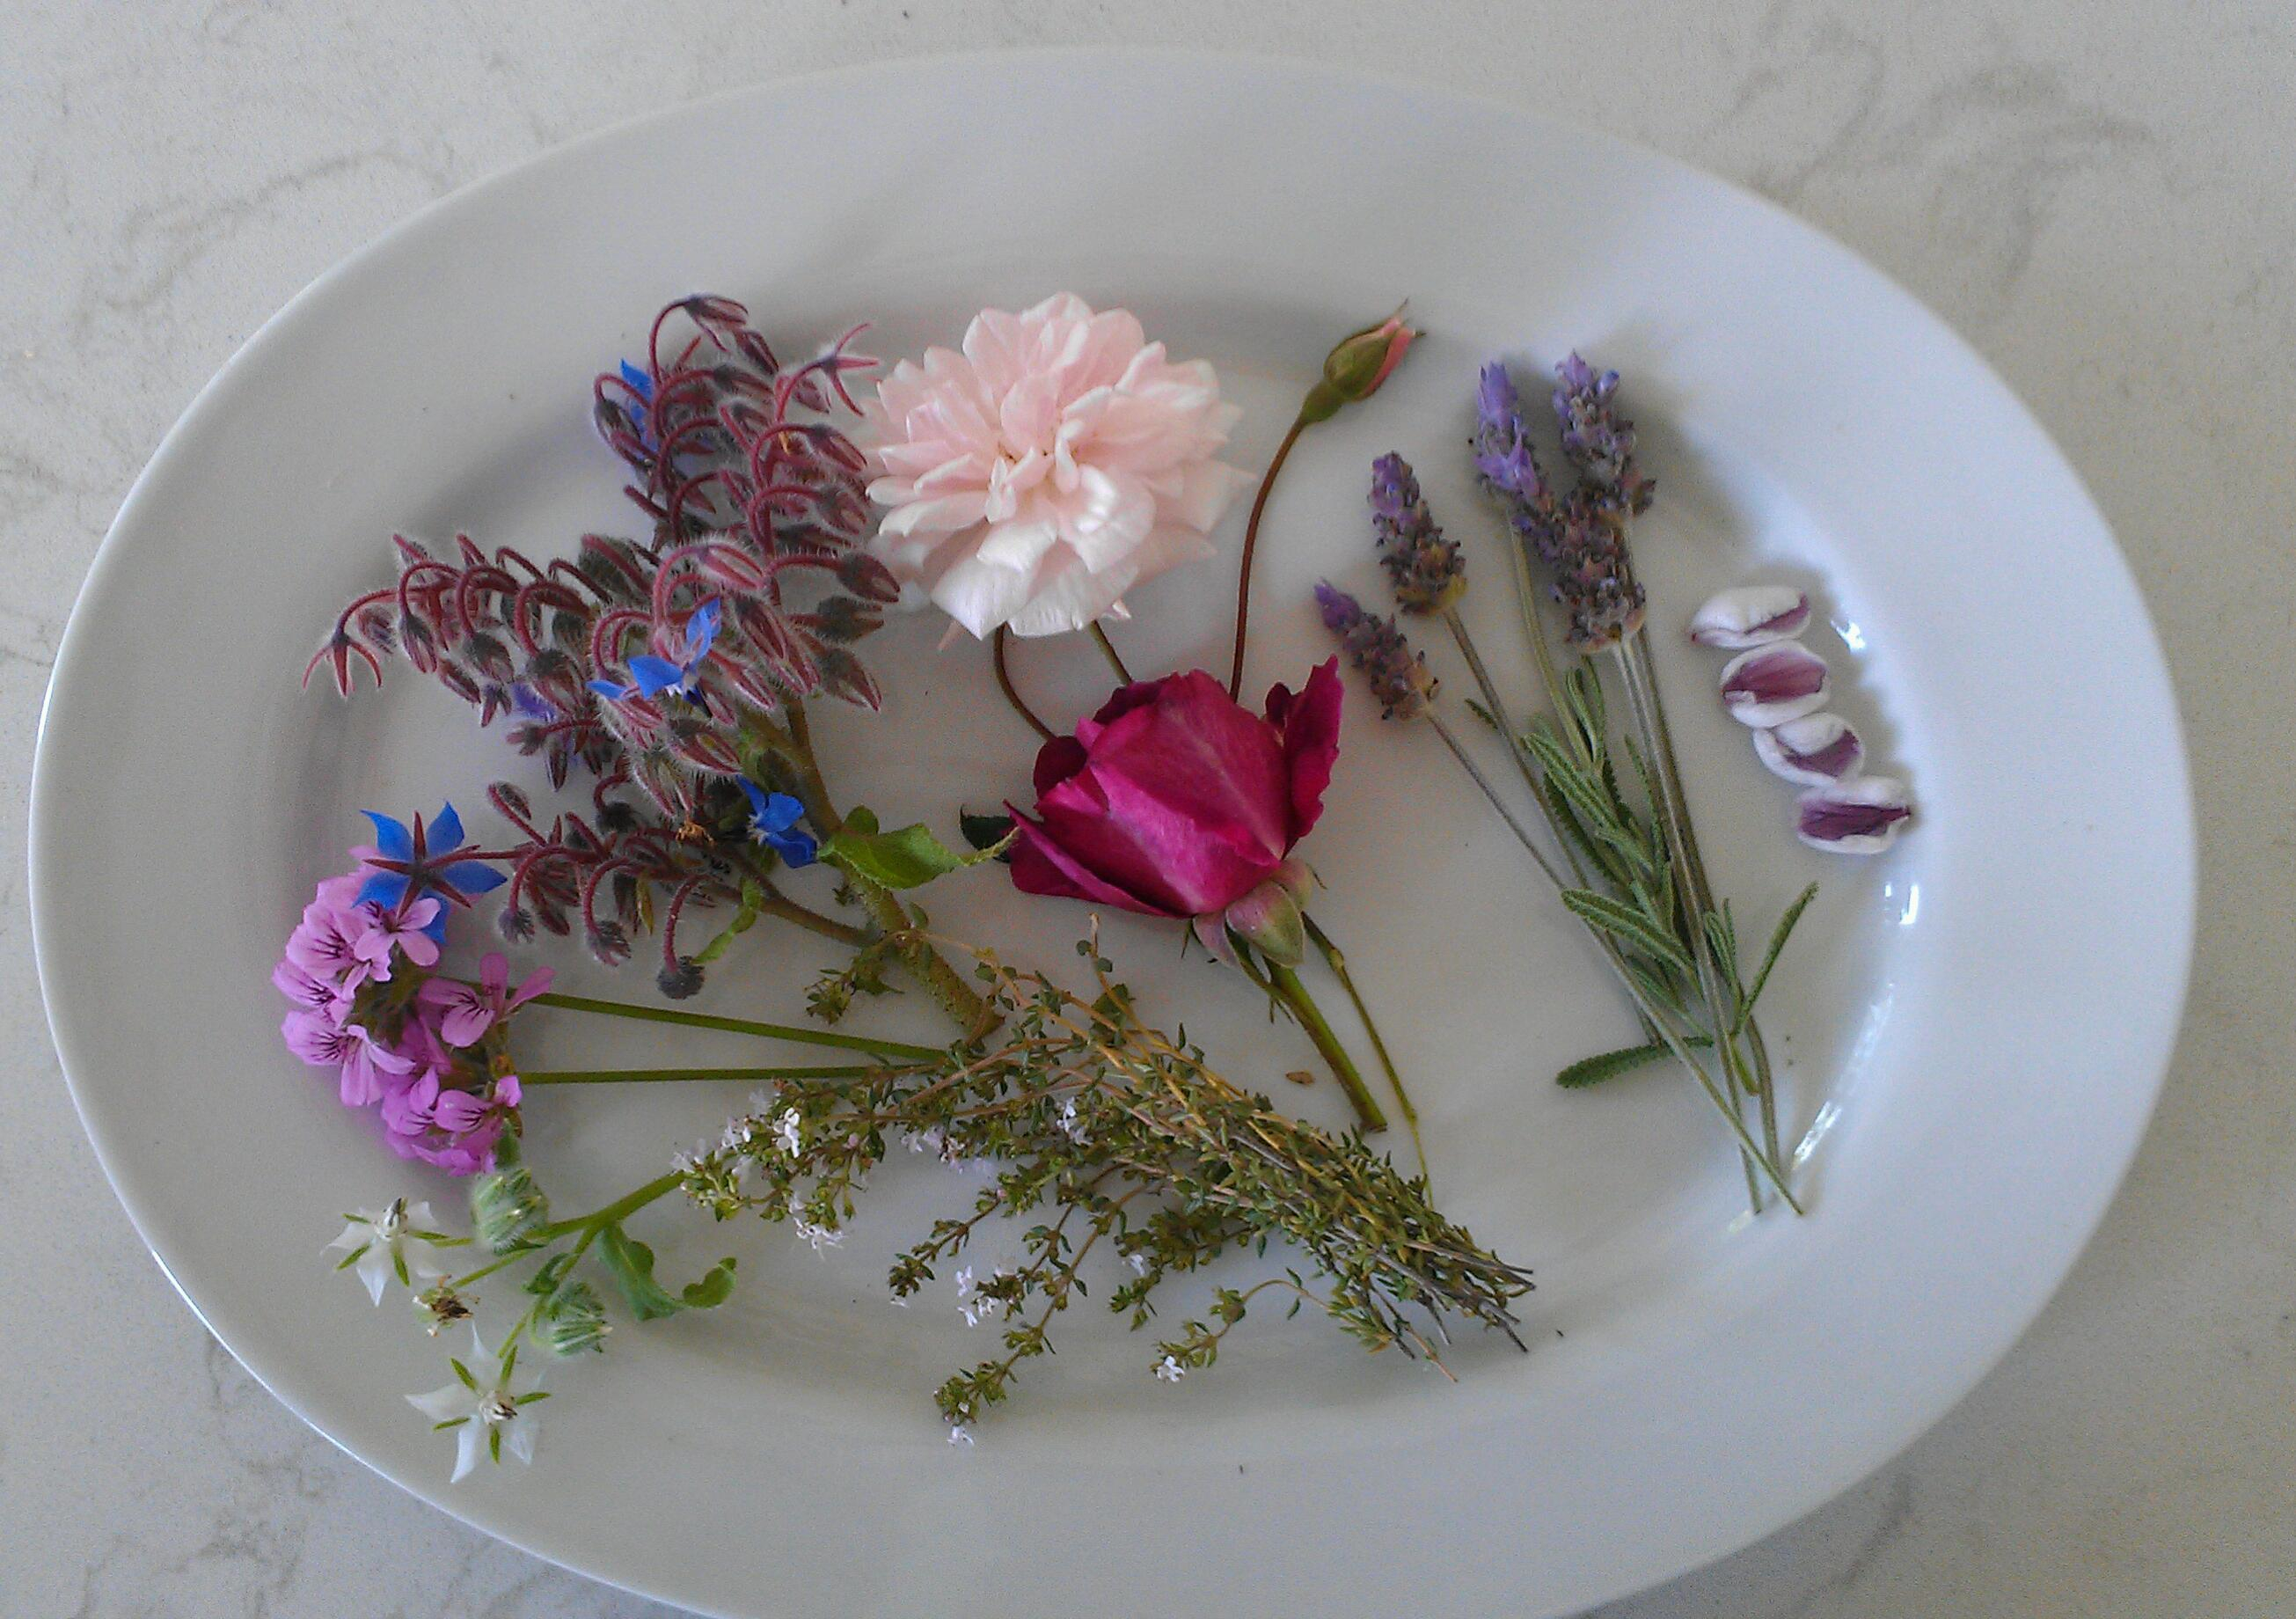 Jazz Up Your Cooking with Healthy and Tasty Edible Flowers